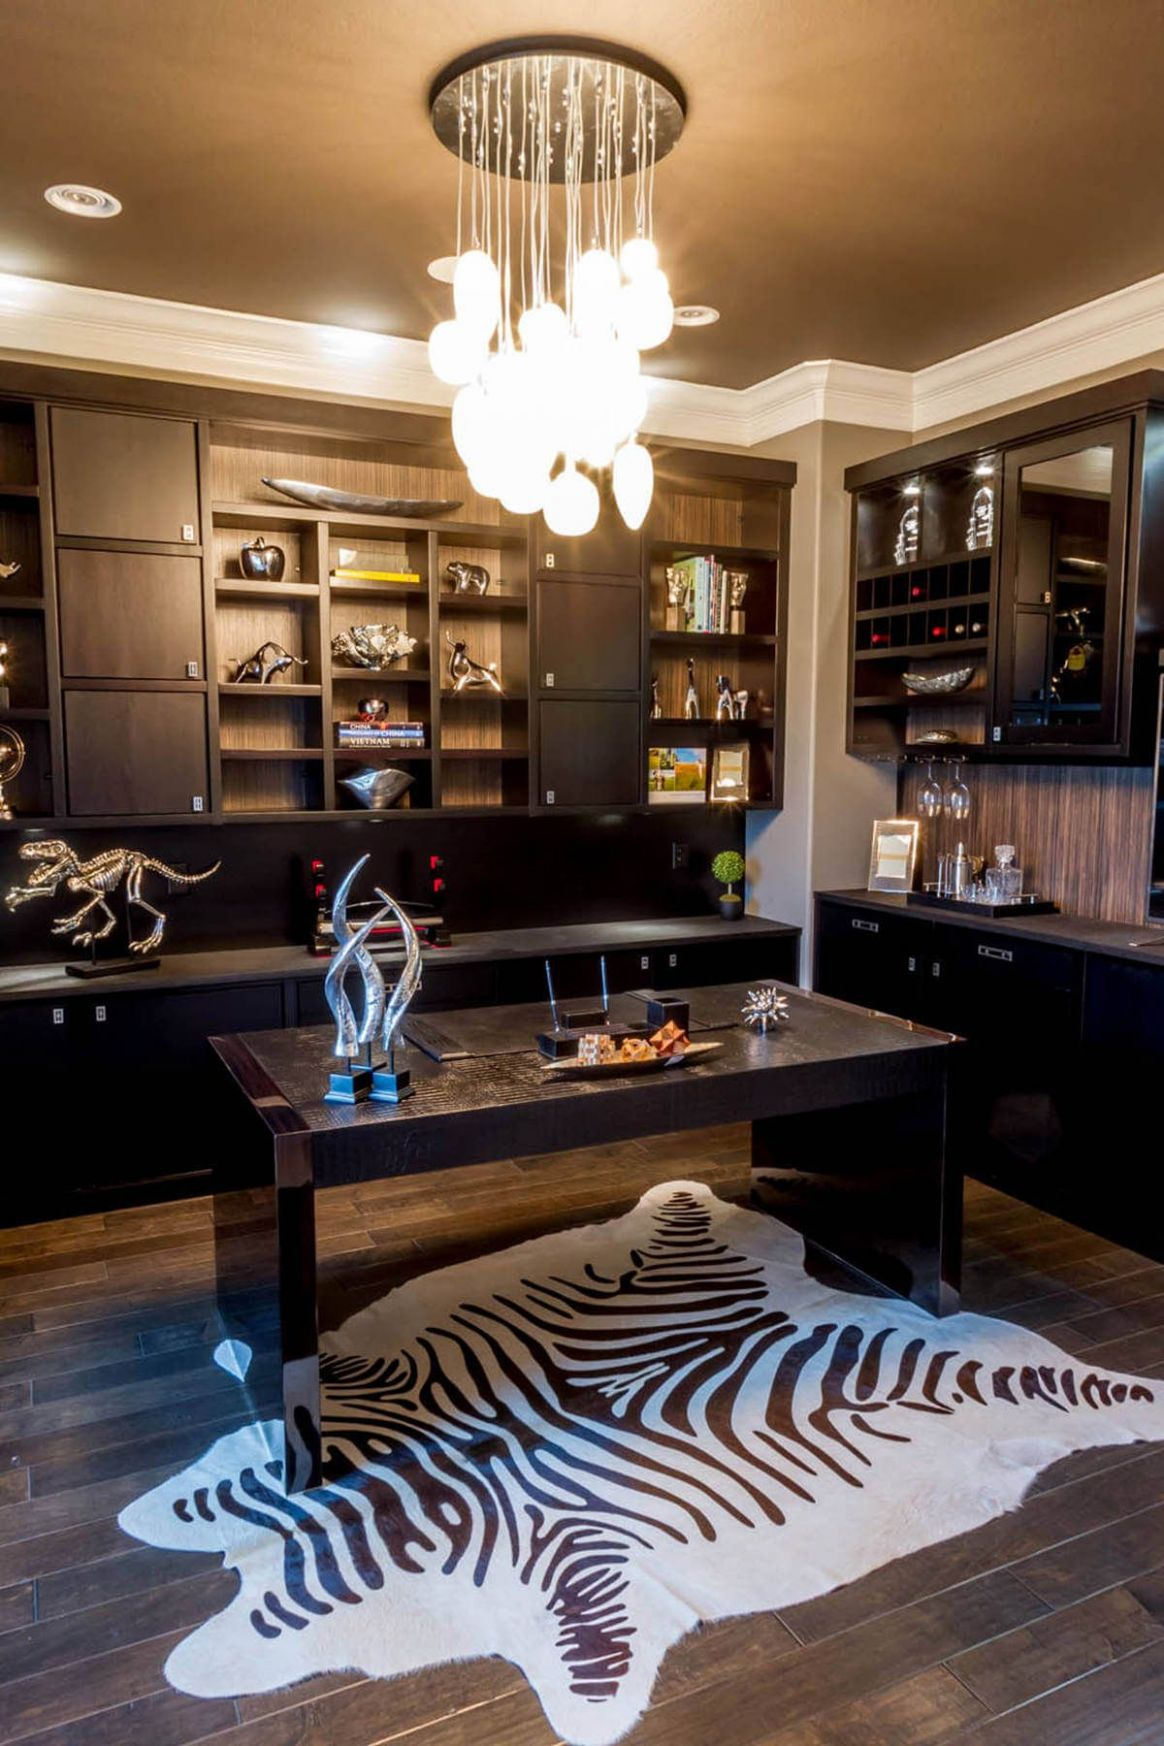 12 Really Great Home Office Ideas (Photos) (With images) | Home ..